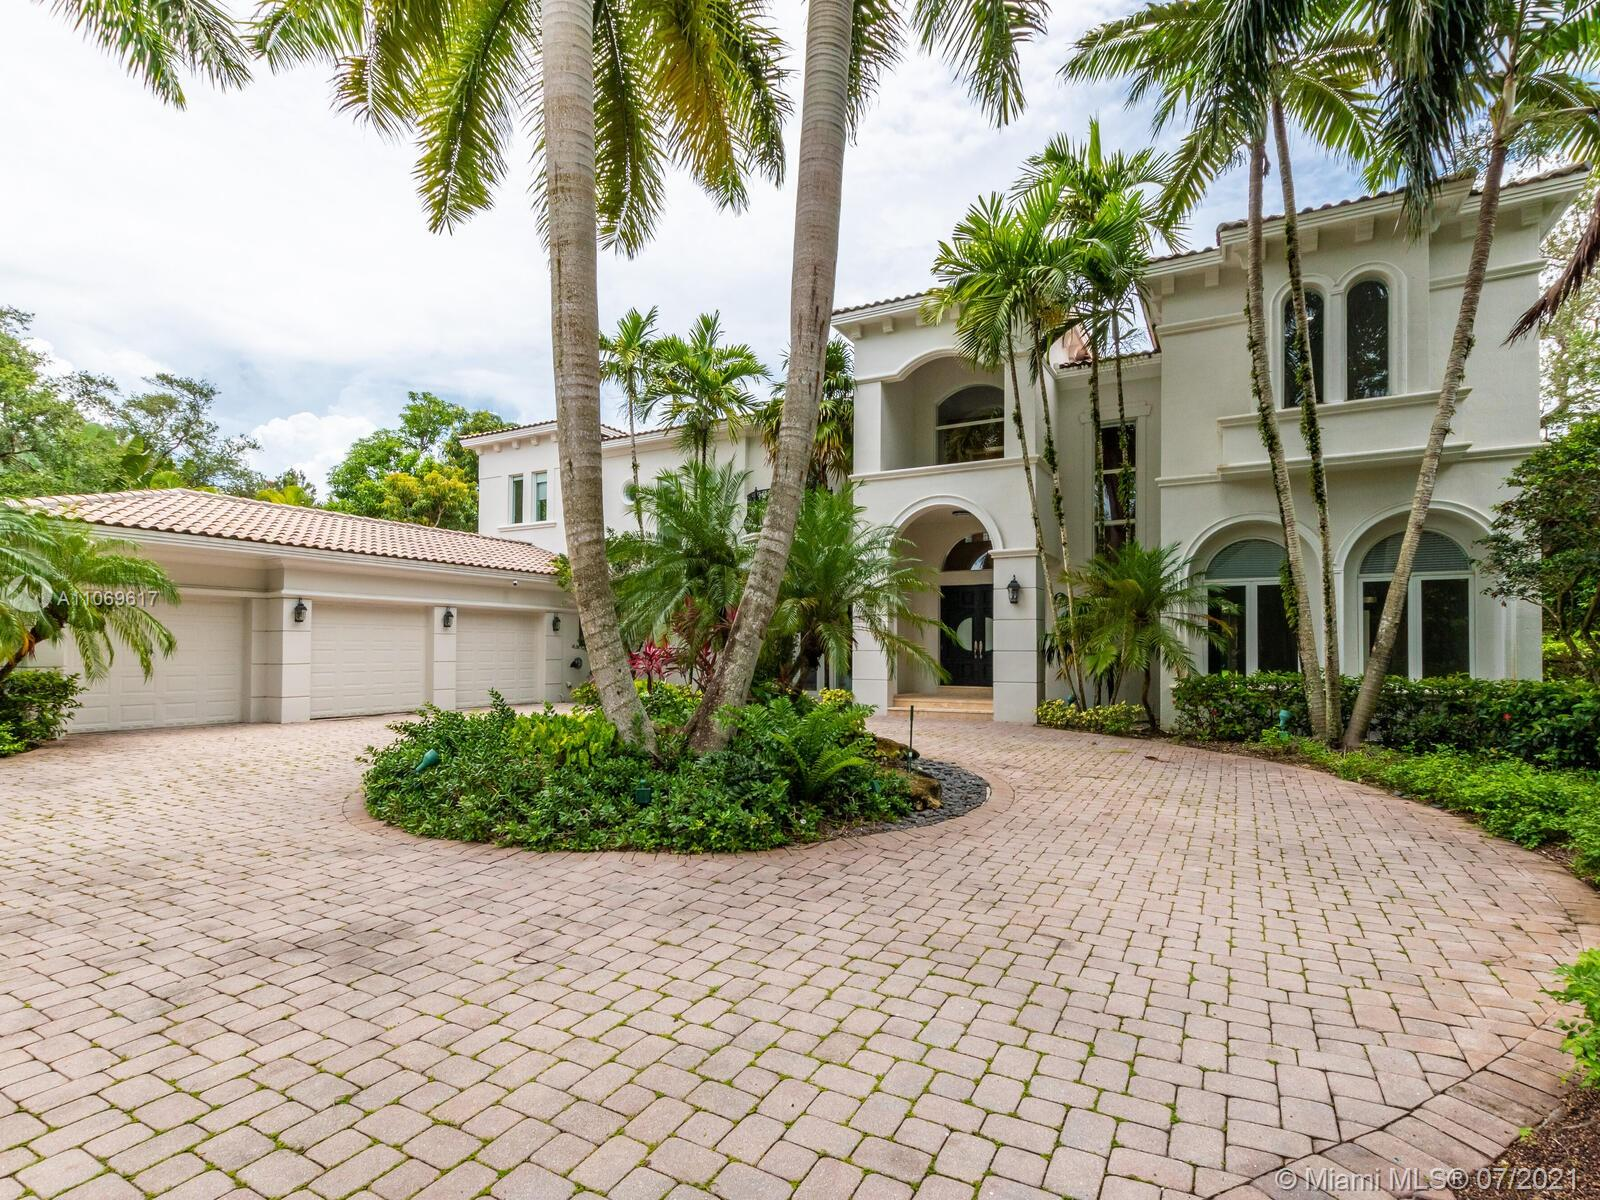 One-Acre Supreme Luxury Estate in NE Pinecrest. Striking & tropical, this extraordinary residence w/seemingly more windows than walls comes to market after a complete 2021 remodel. Drive thru the gates over Chicago pavers into a lush palm grove, then pass thru exterior & interior foyers to enter a grand space of volume ceilings, a sky-high wood façade & staircase + sunlight pouring in from all sides. The spectacular new kitchen has Sub-Zero, Thermador & Dacor appliances, along w/a cooking island, butler's pantry & wine fridge. Speaking of wine, there's a 700-bottle wine cellar! The all-new baths have marble tile; the bedroom flooring is chic wood-look porcelain. The huge pool patio & yard serve as playground, sanctuary & entertainment zone. Staff qtrs, service stairs, 3CG, impact wdws/drs.